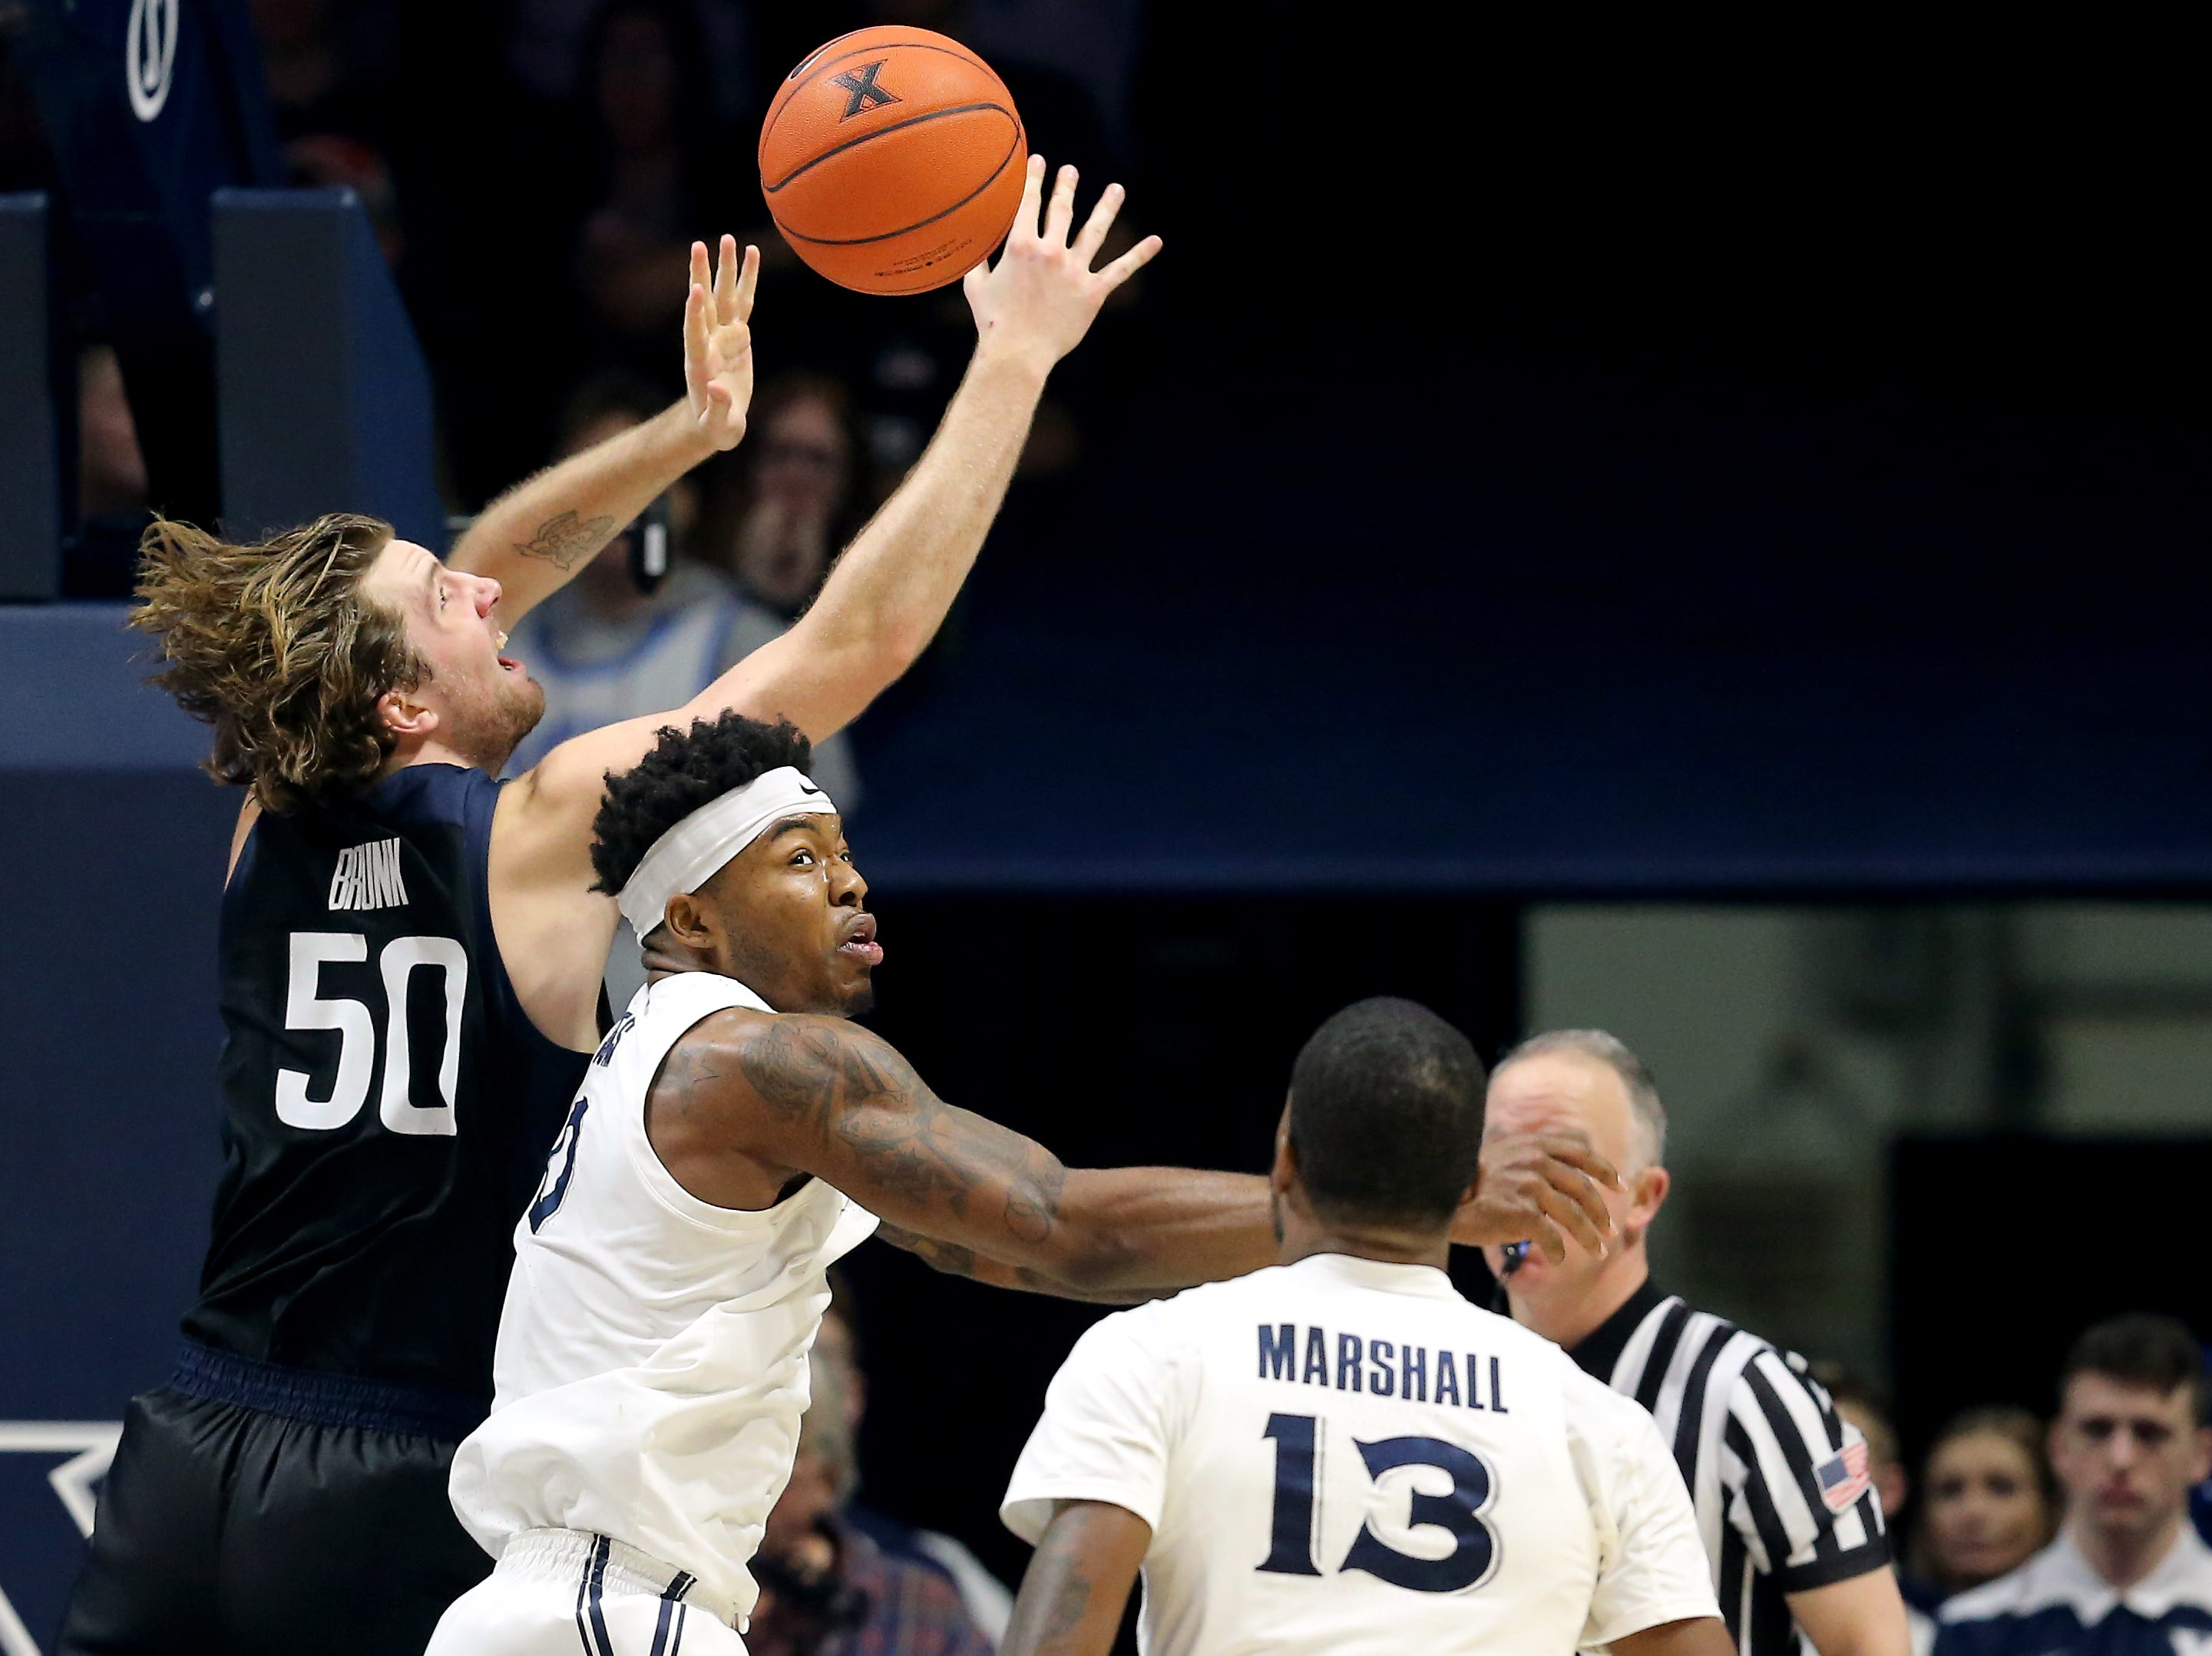 Butler Bulldogs forward Joey Brunk (50) and Xavier Musketeers forward Tyrique Jones (0) fight for a loose ball in the second half of an NCAA college basketball game, Sunday, Jan. 13, 2019, at Cintas Center in Cincinnati. Xavier Musketeers won 70-69.